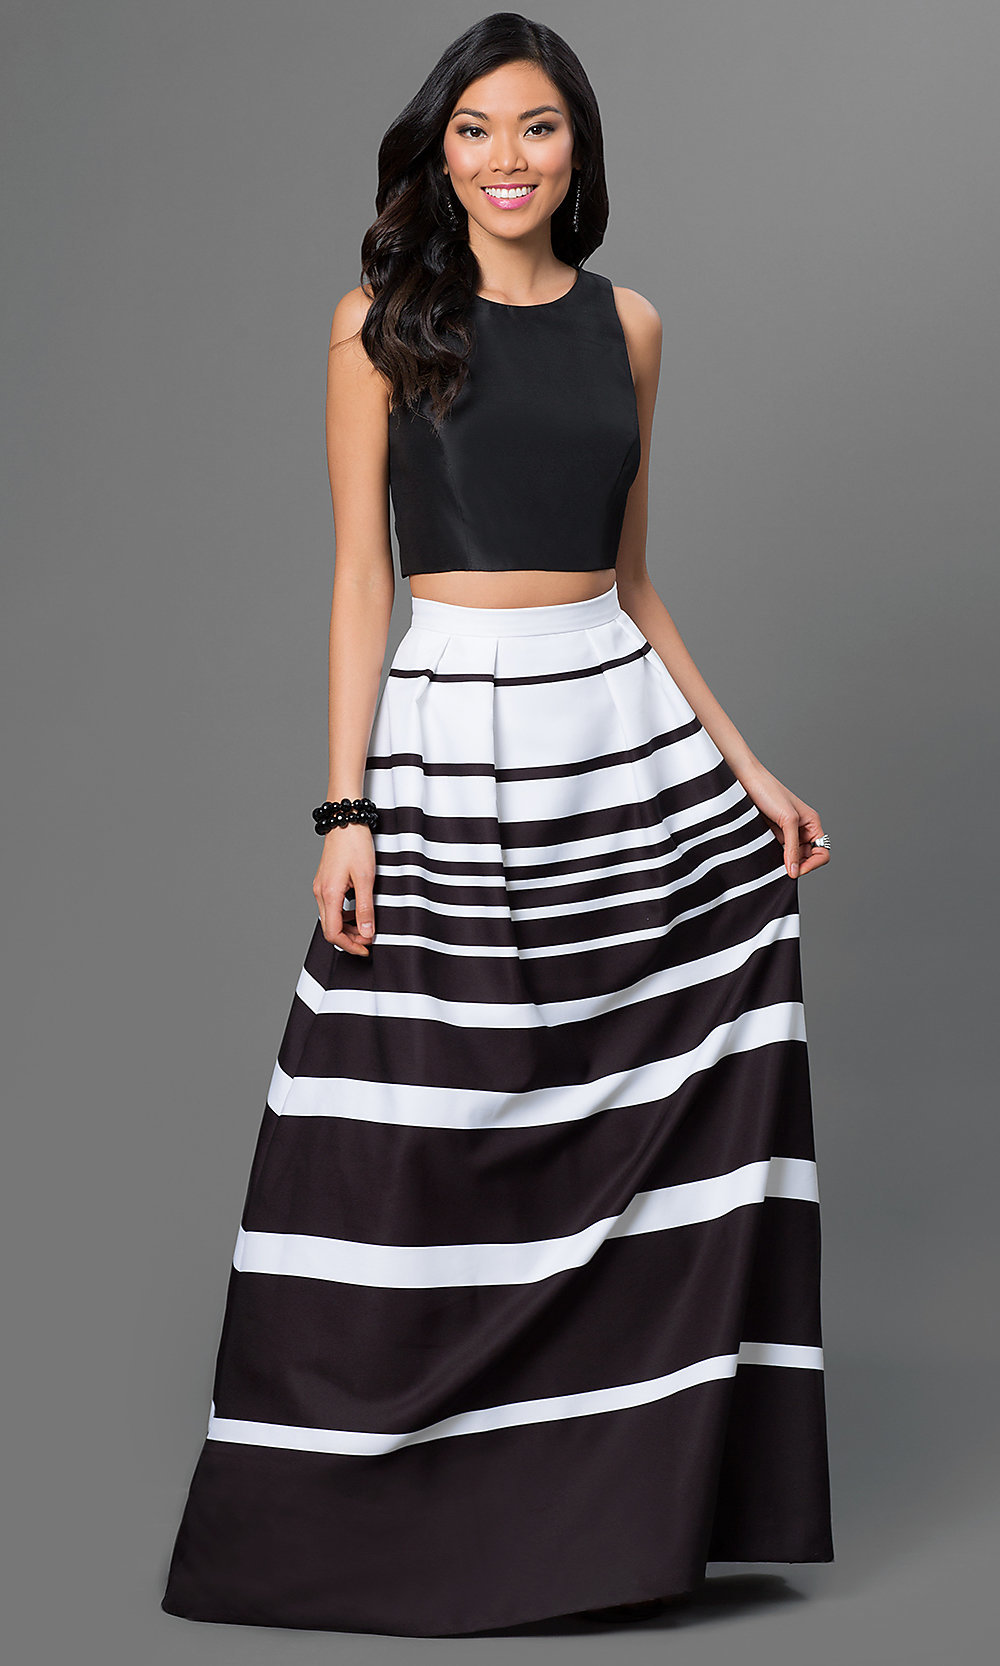 Long Two-Piece Striped Skirt Prom Dress - PromGirl